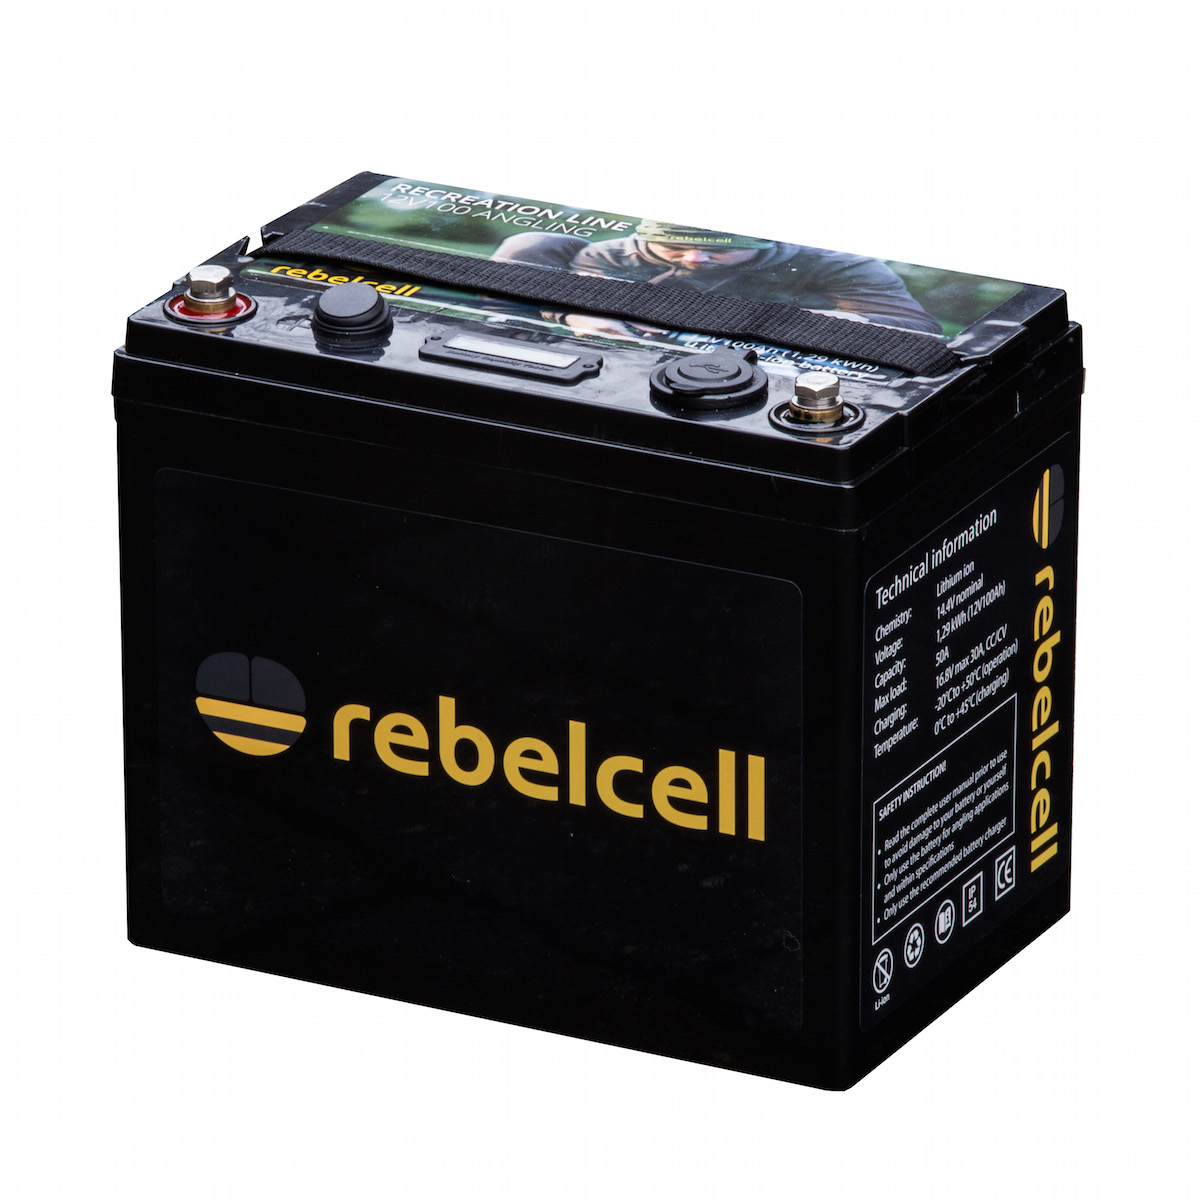 Rebelcell Ultimate 12V100 Inkl. Lader